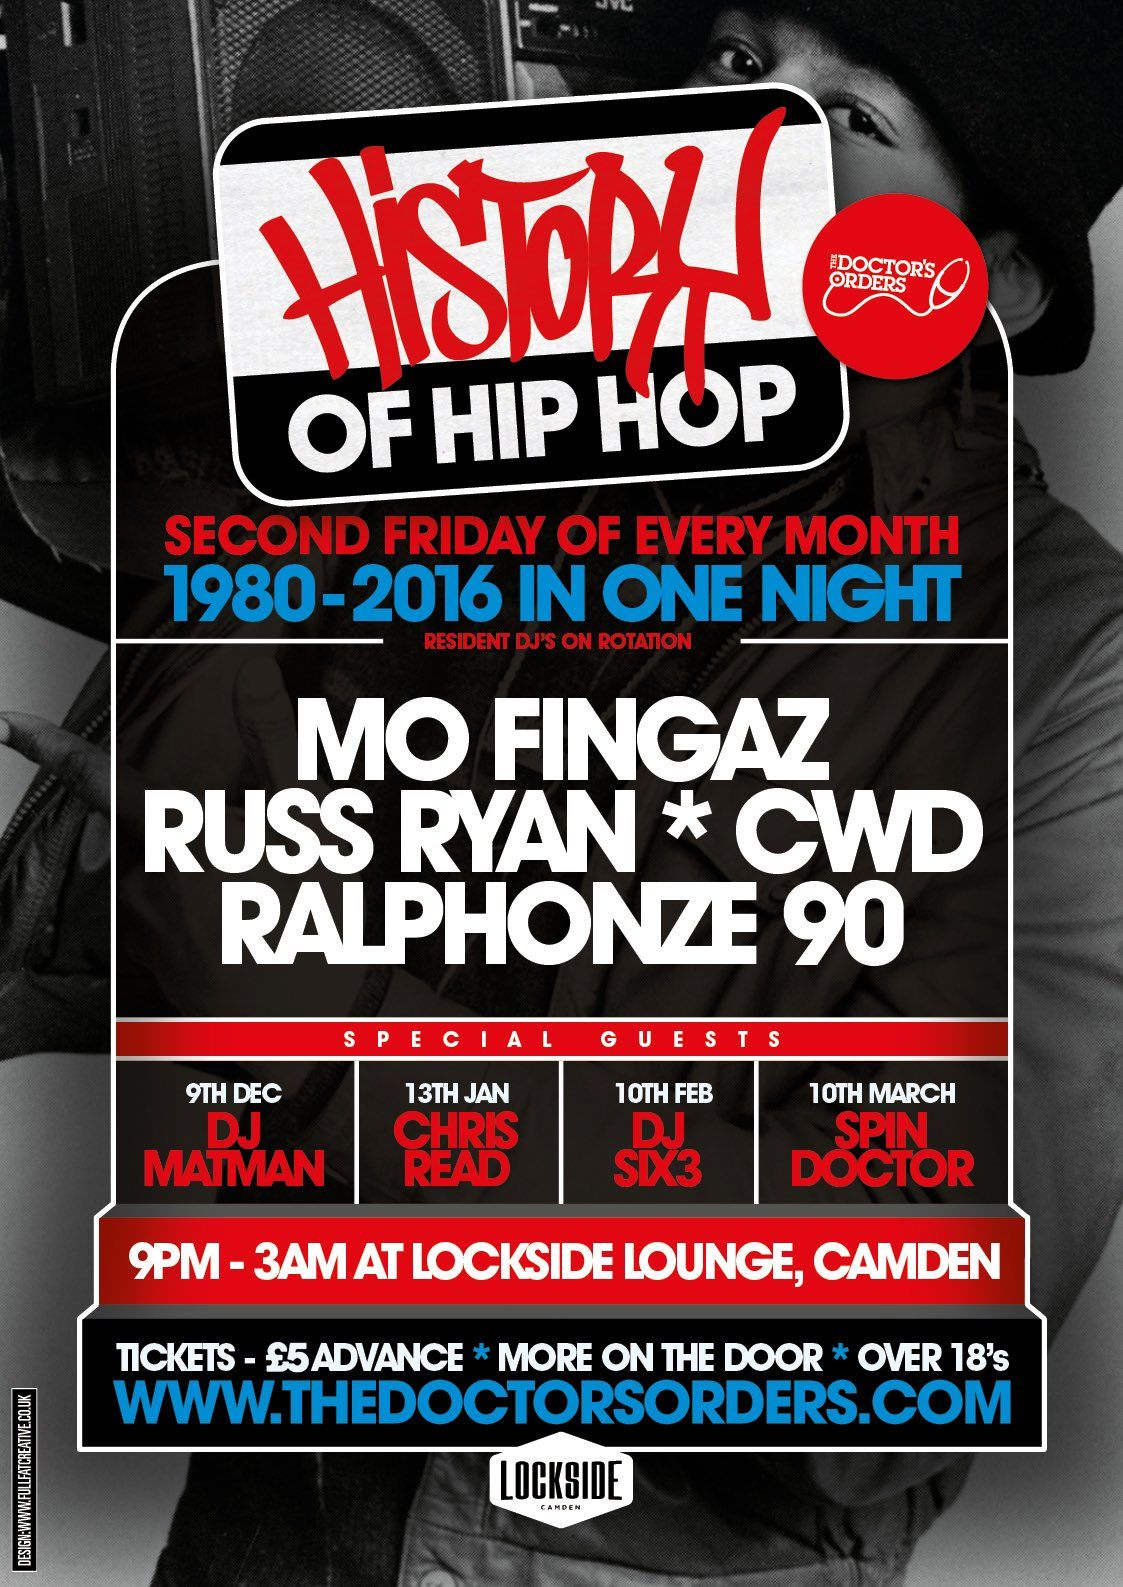 Book Tickets for History of Hip-Hop at Lockside Camden, Camden Lock Place on Fri 9th Dec 2016 - brought to you by The Doctor's Orders.